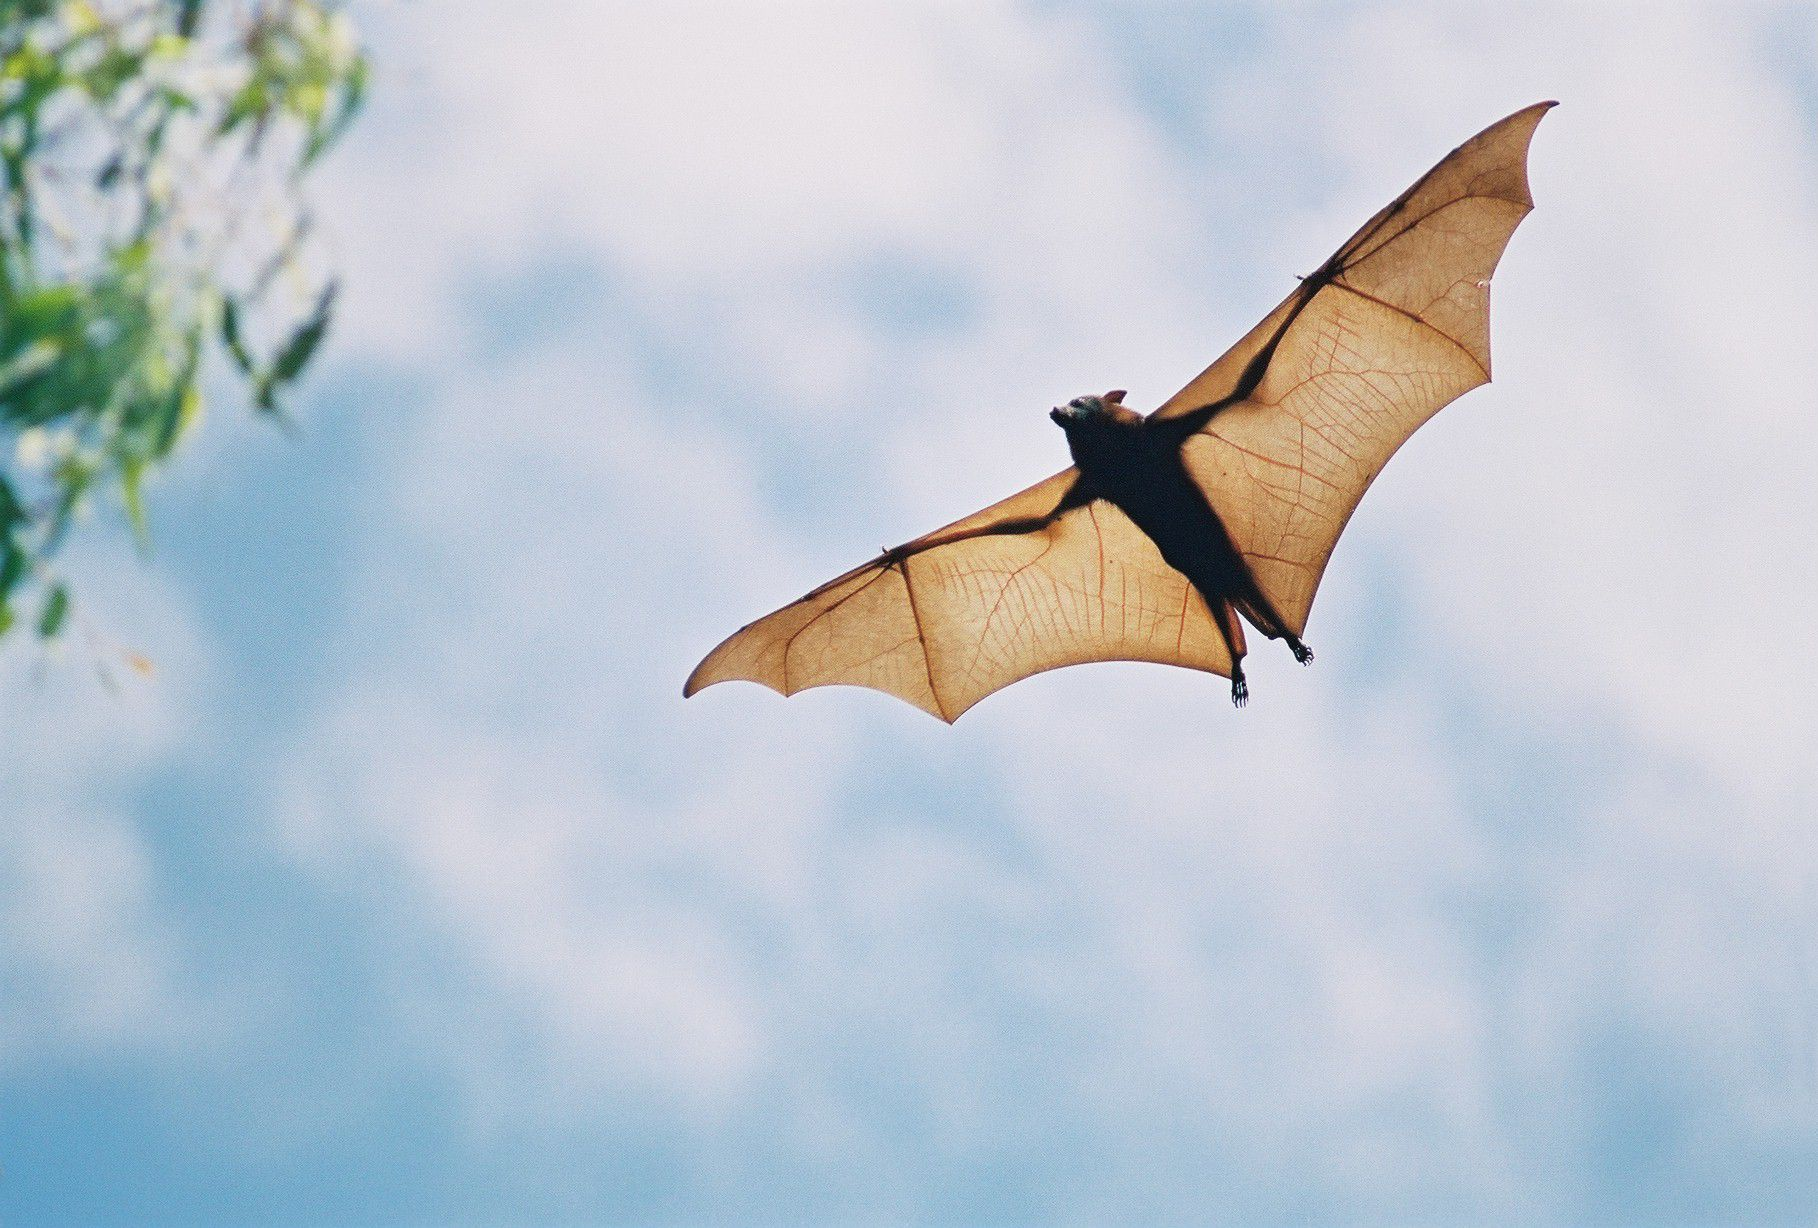 Bat-inspired technology could help the visually-impaired.